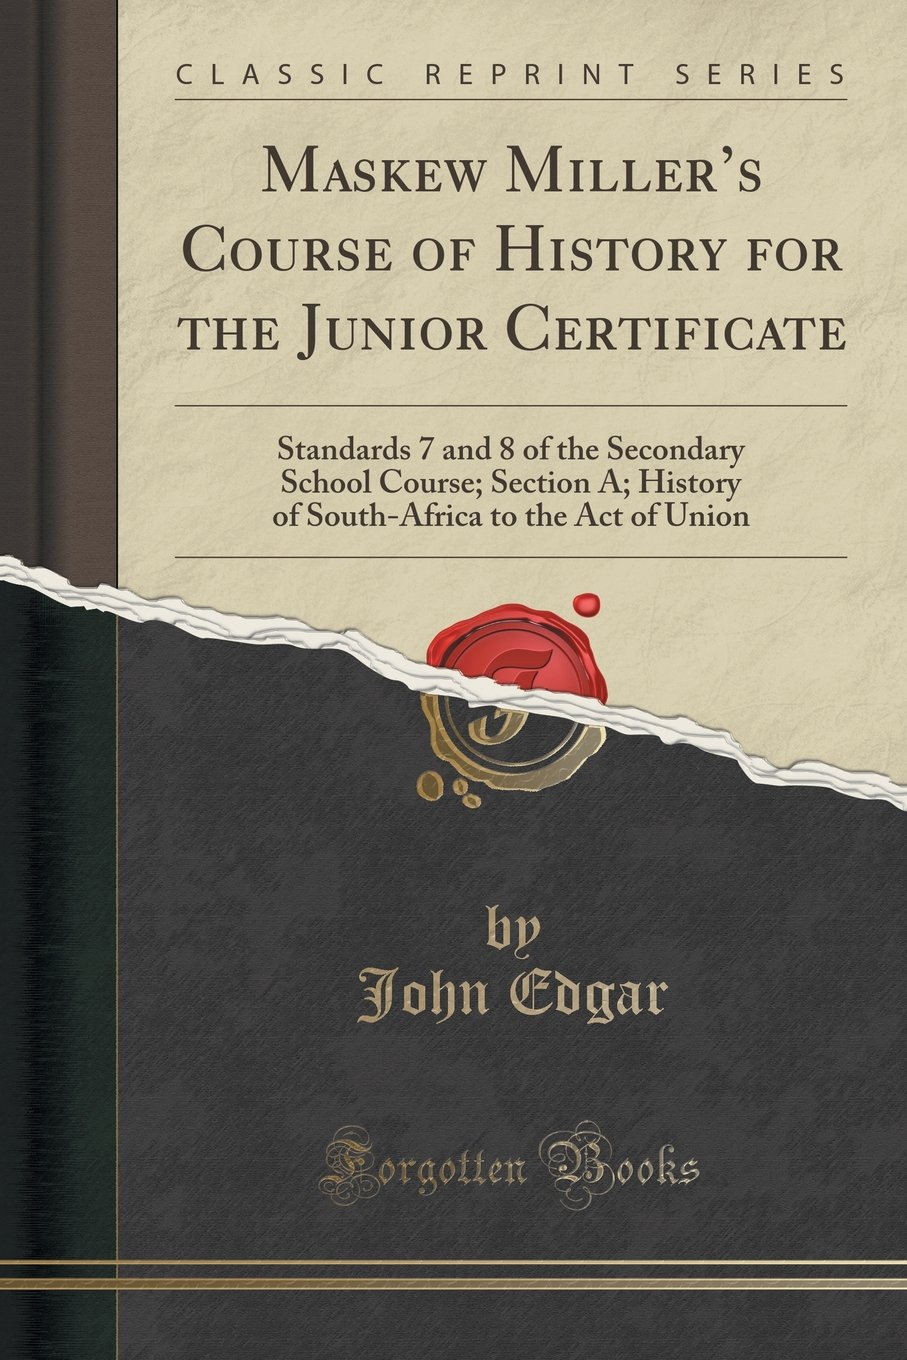 Download Maskew Miller's Course of History for the Junior Certificate: Standards 7 and 8 of the Secondary School Course; Section A; History of South-Africa to the Act of Union (Classic Reprint) pdf